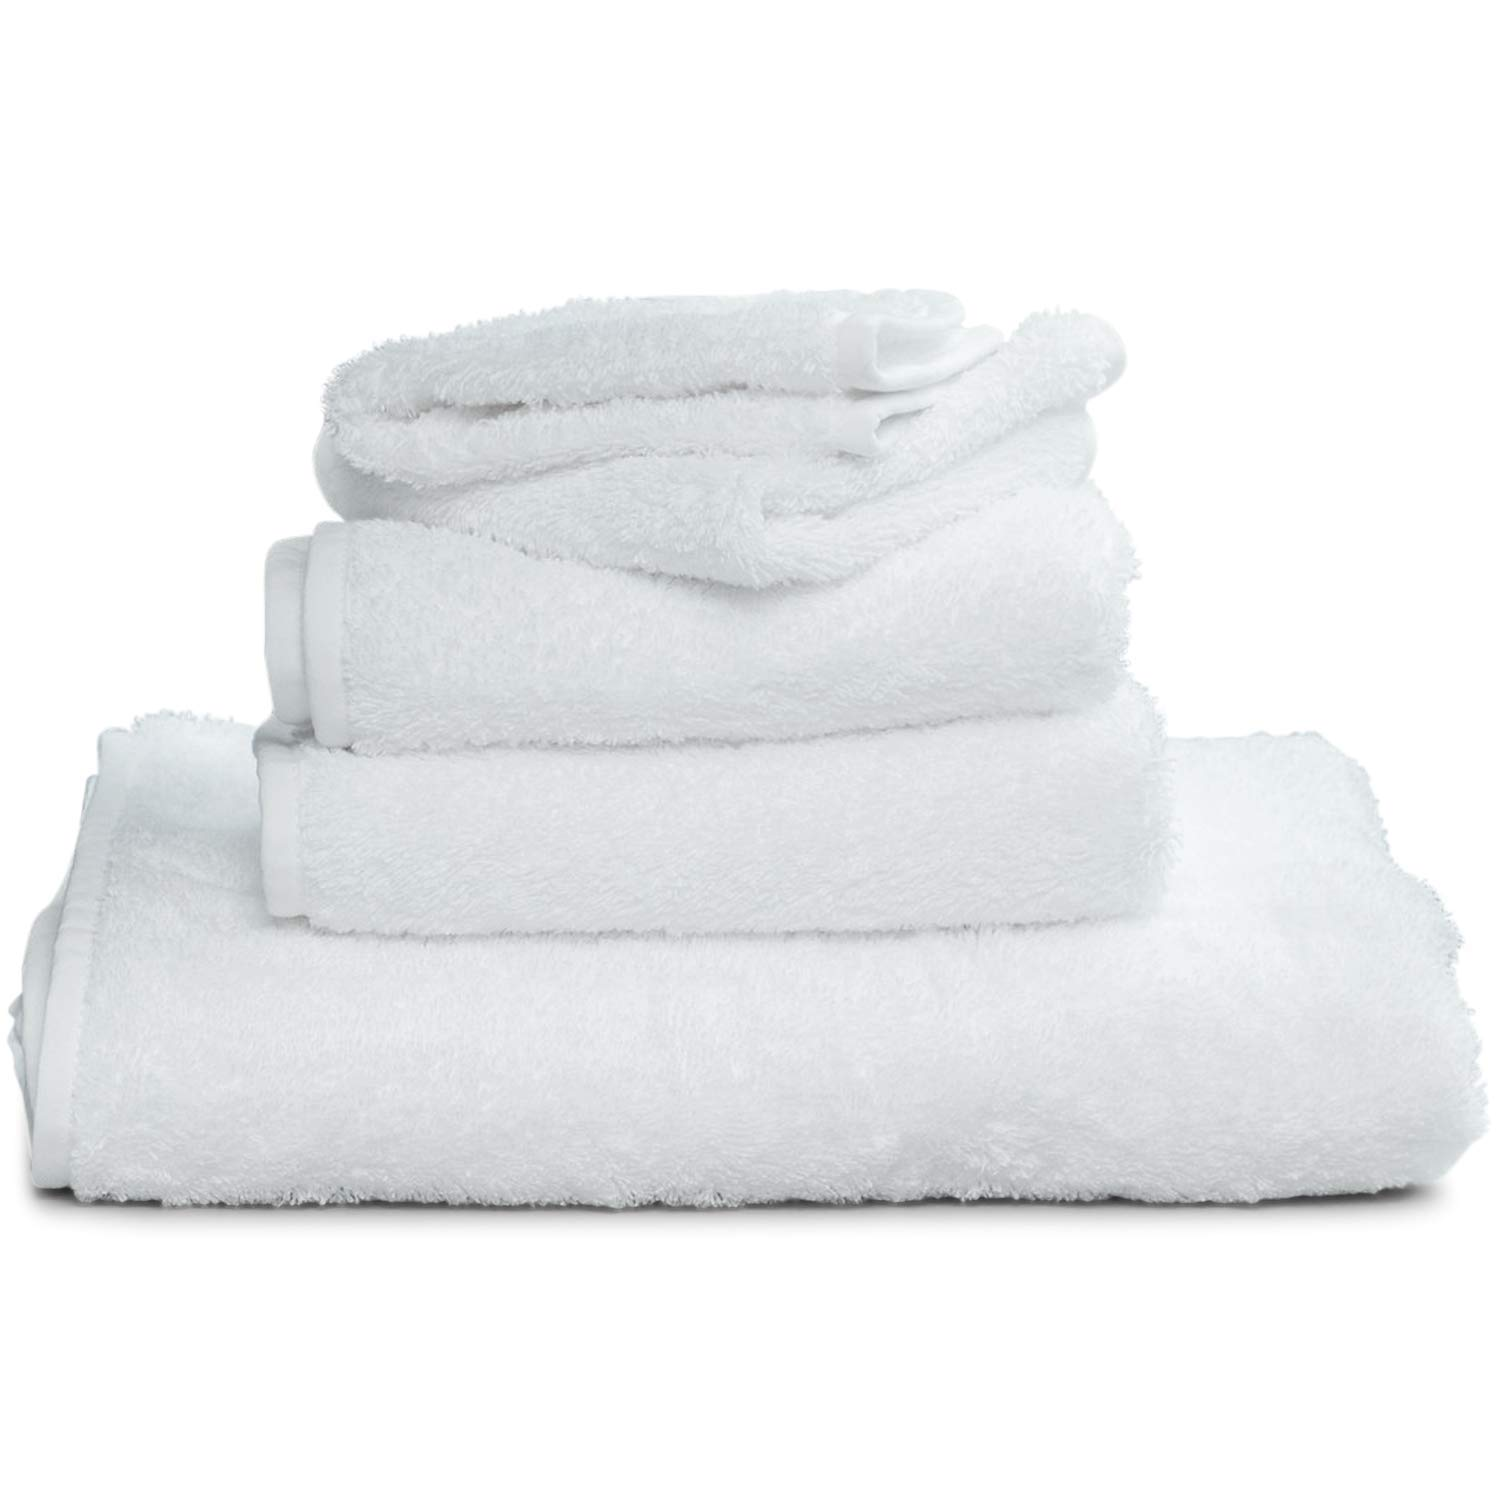 Winter Park Towel Co. White Supima Bath Sheet (40 x 70) - Extra Large Luxury - Added Loop to Hang from Hook - Made of 100% USA Grown Cotton Oeko-TEX Certified